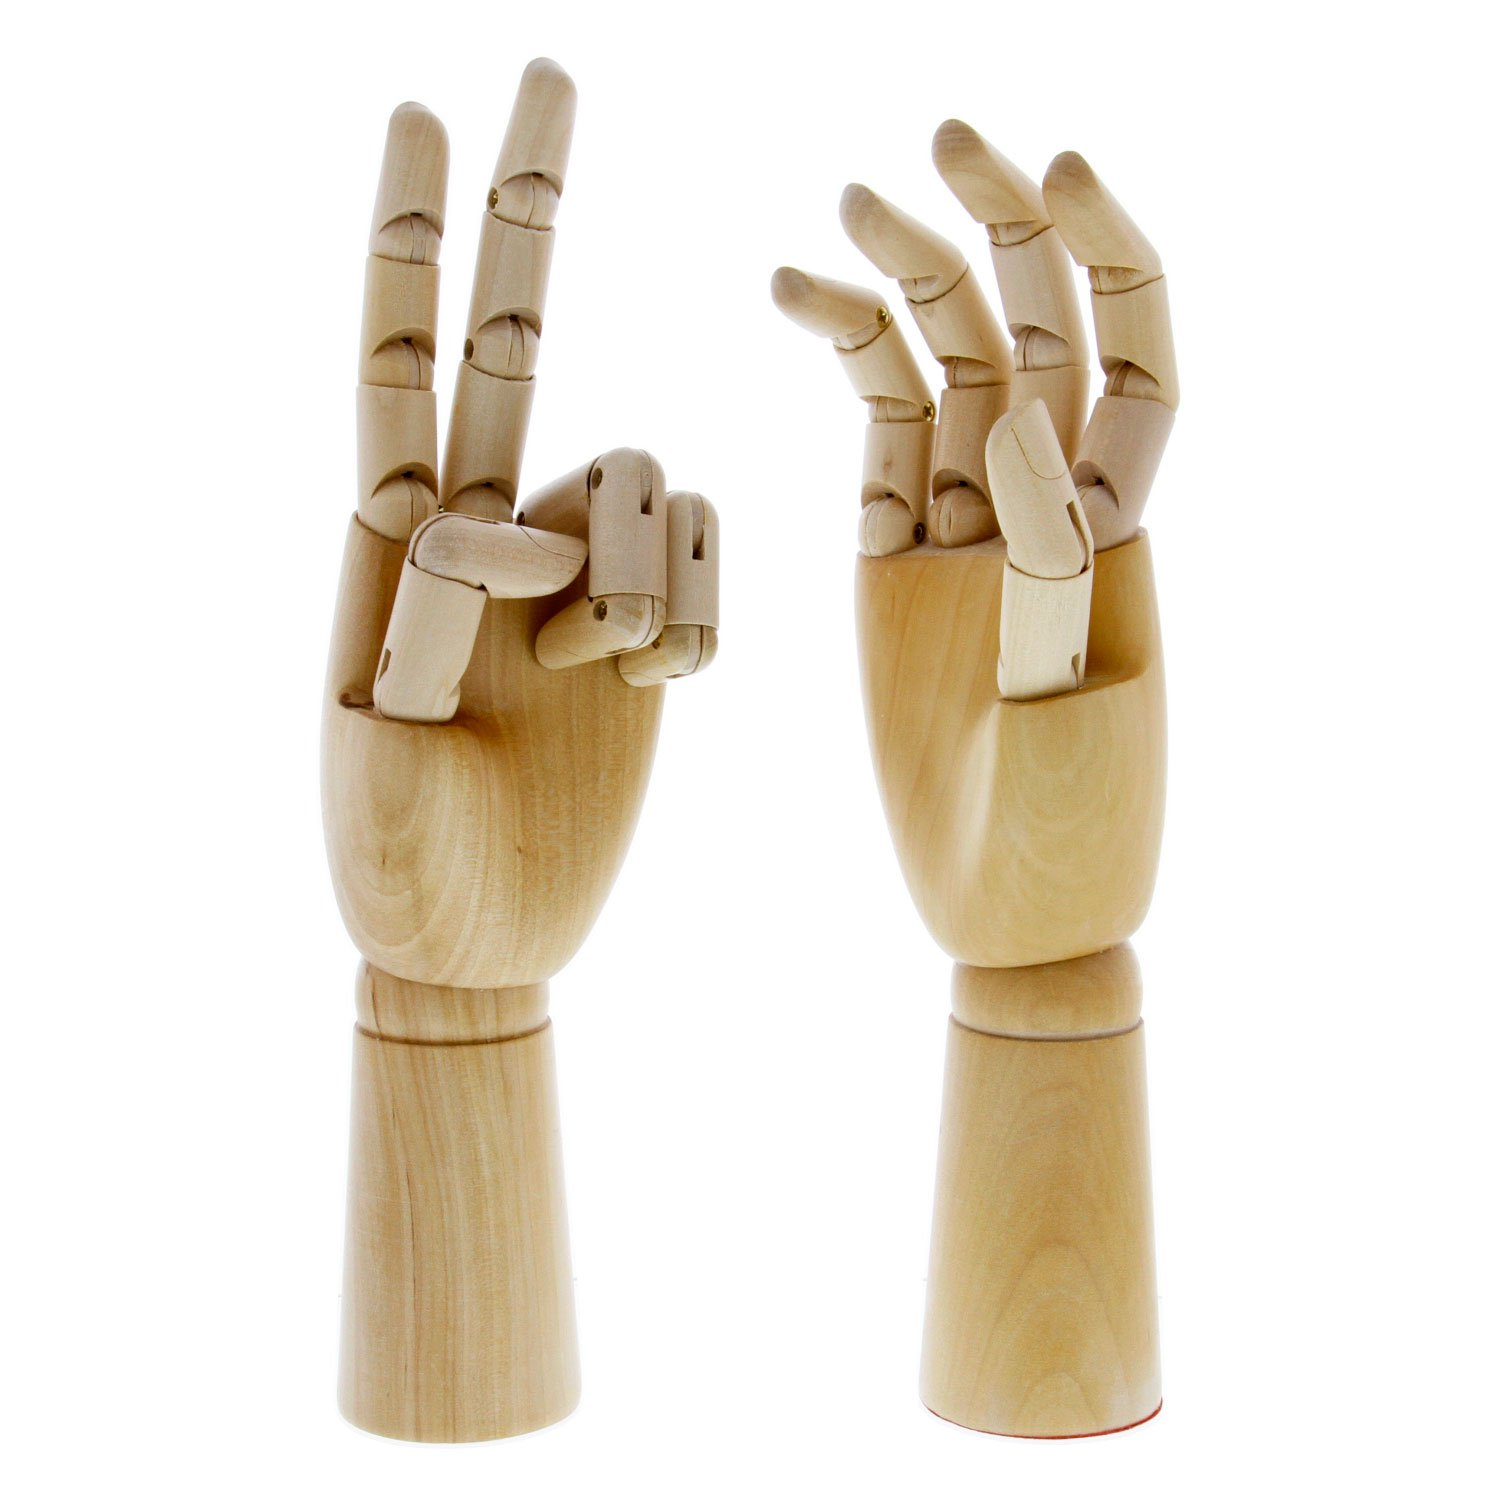 """US Art Supply Pair of 12"""" Left & 12"""" Right Hands Wood Artist Drawing Manikin Articulated Mannequin with Wooden Flexible Fingers - Perfect for drawing the human hand (12"""" Pair of Left & Right)"""